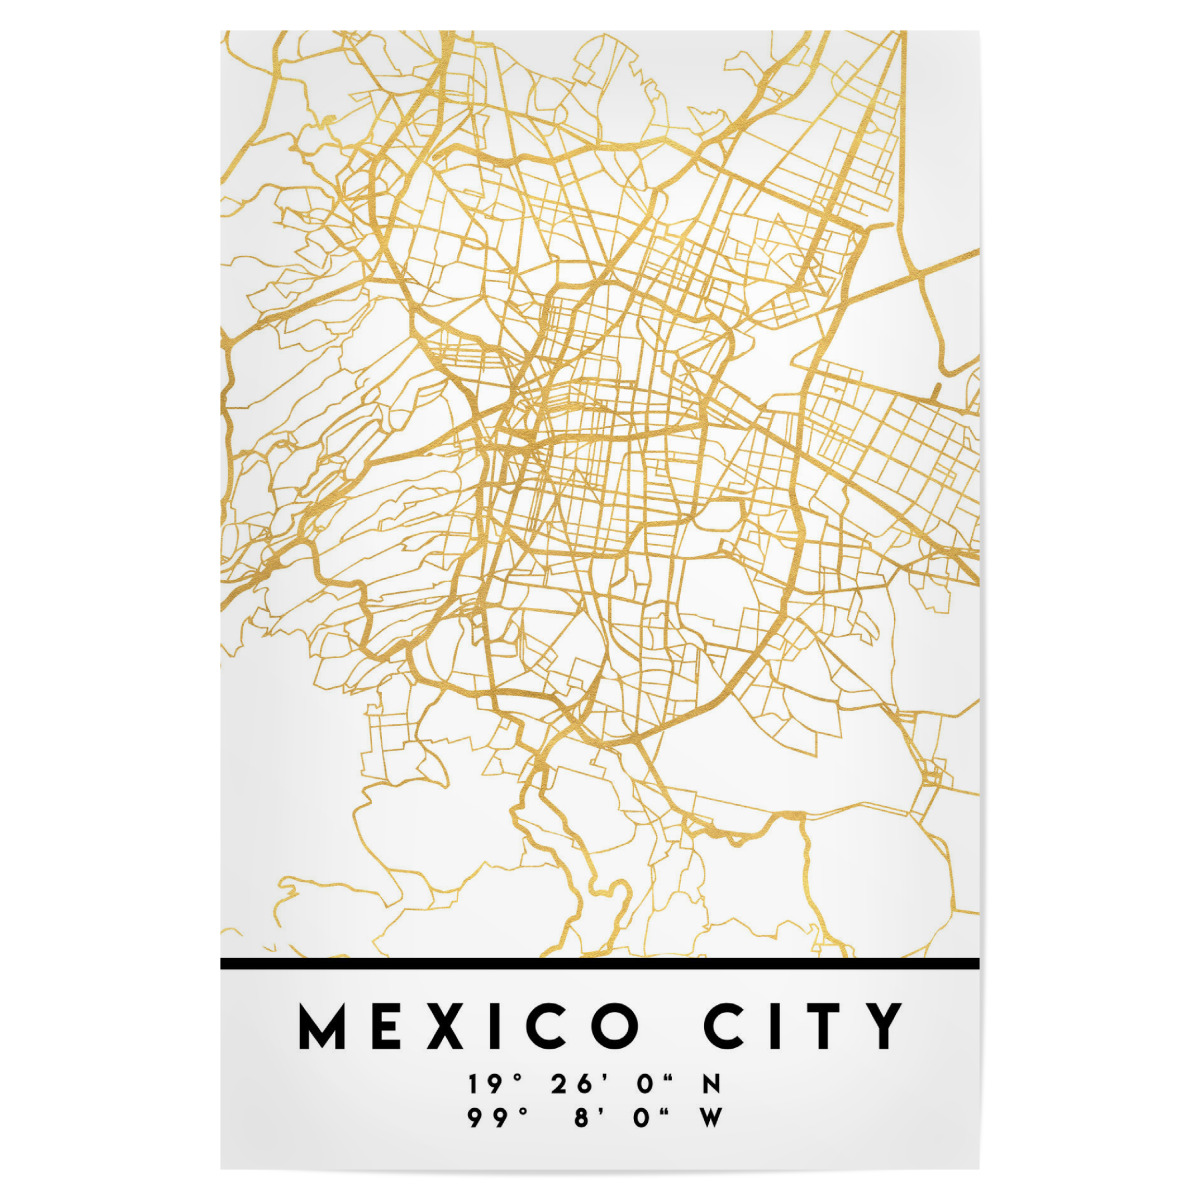 MEXICO CITY STREET MAP ART als Poster bei artboxONE kaufen